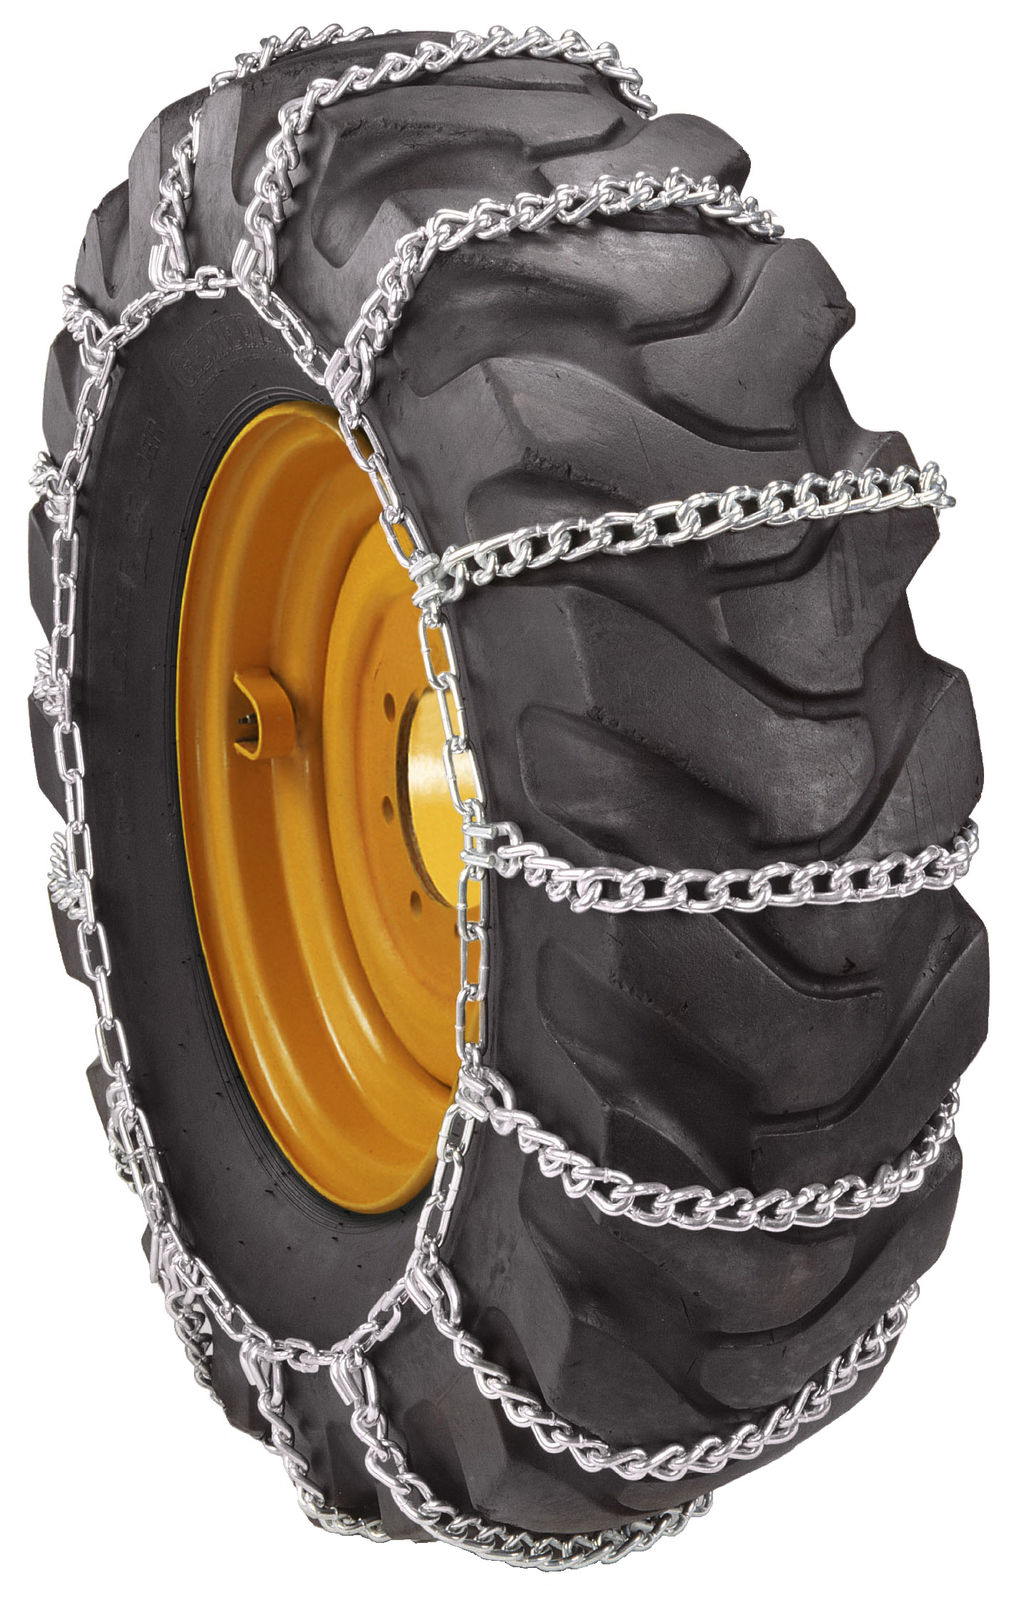 CRT Ladder Style Farm Tractor Snow Tire Chains Size: 11.2-24 at Sears.com